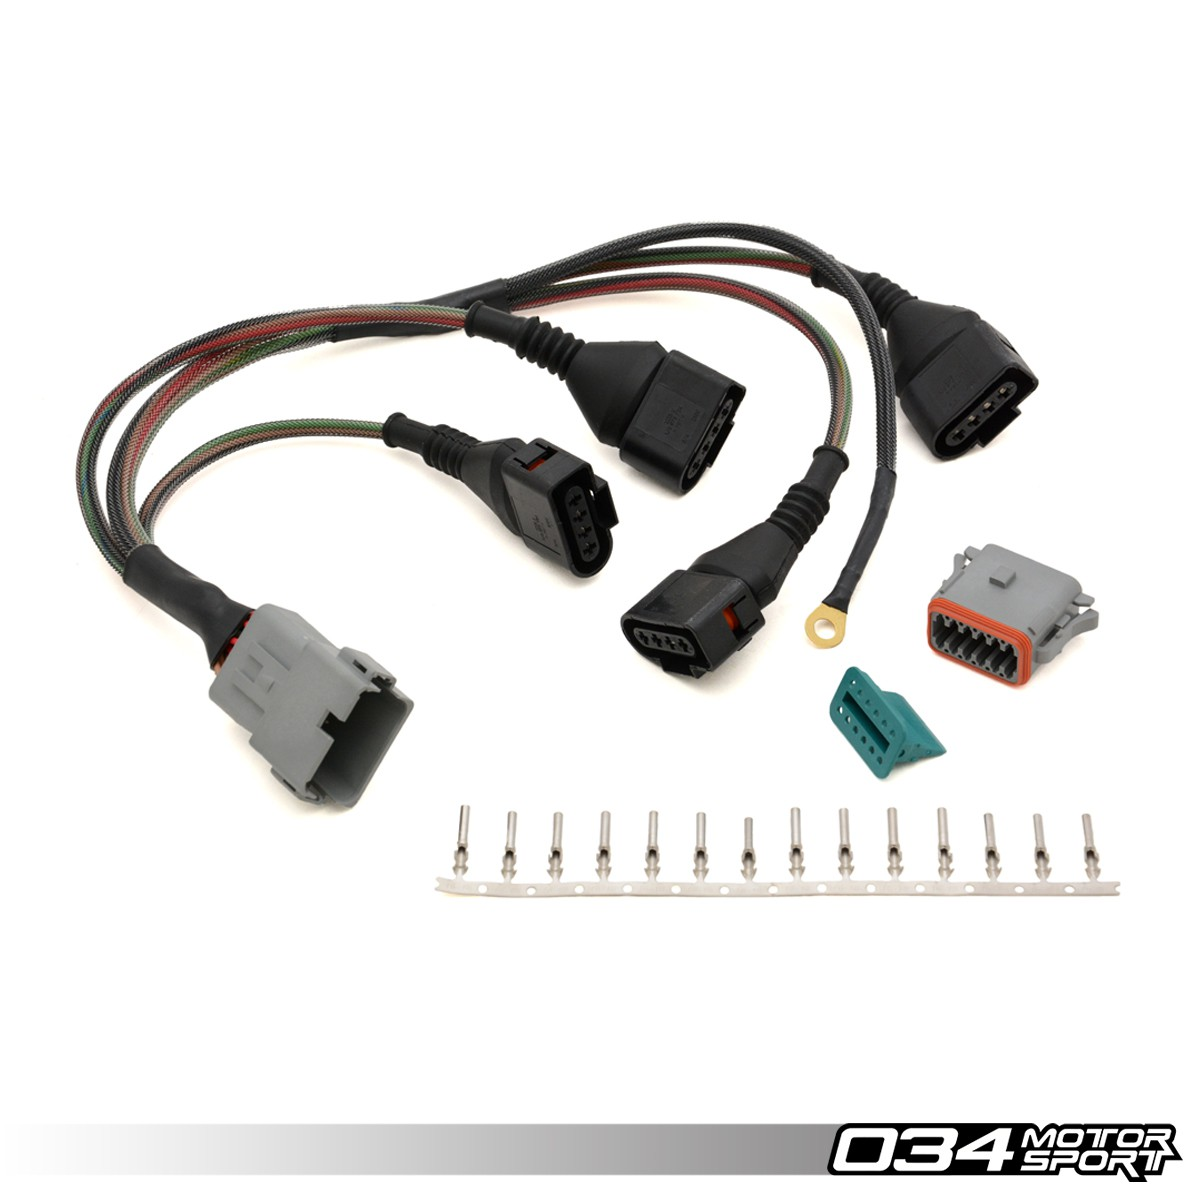 Repair/Update Harness, Audi/Volkswagen 1.8T with 4-Wire Coils | 034-701-0004